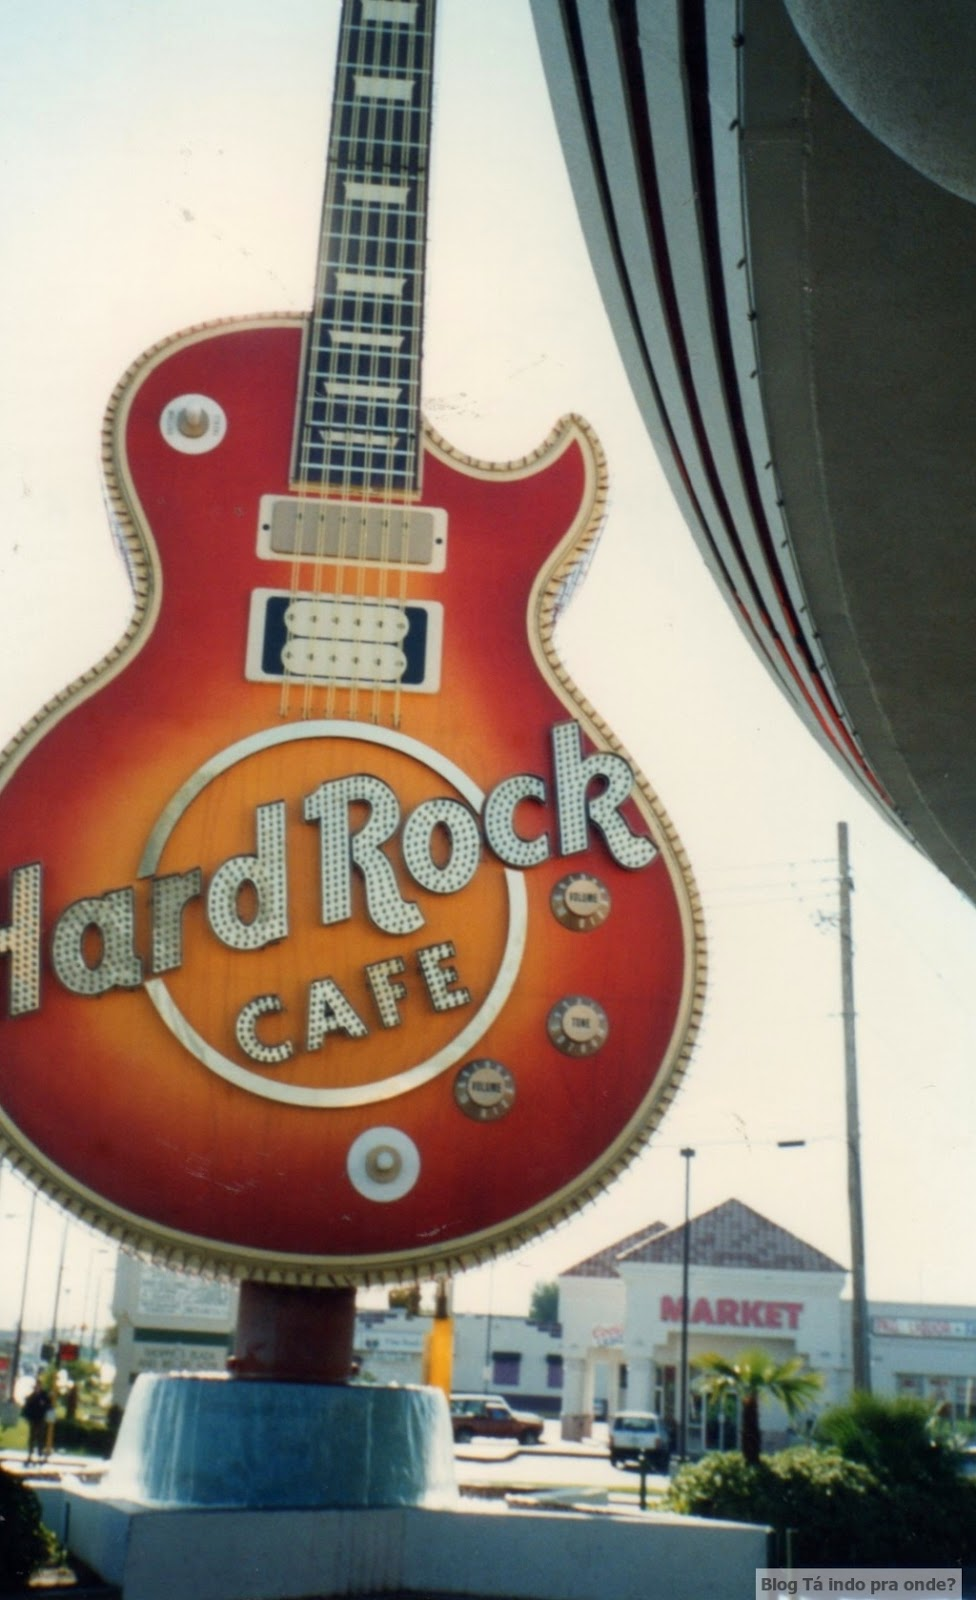 Hard Rock Cafe Hotel Las Vegas